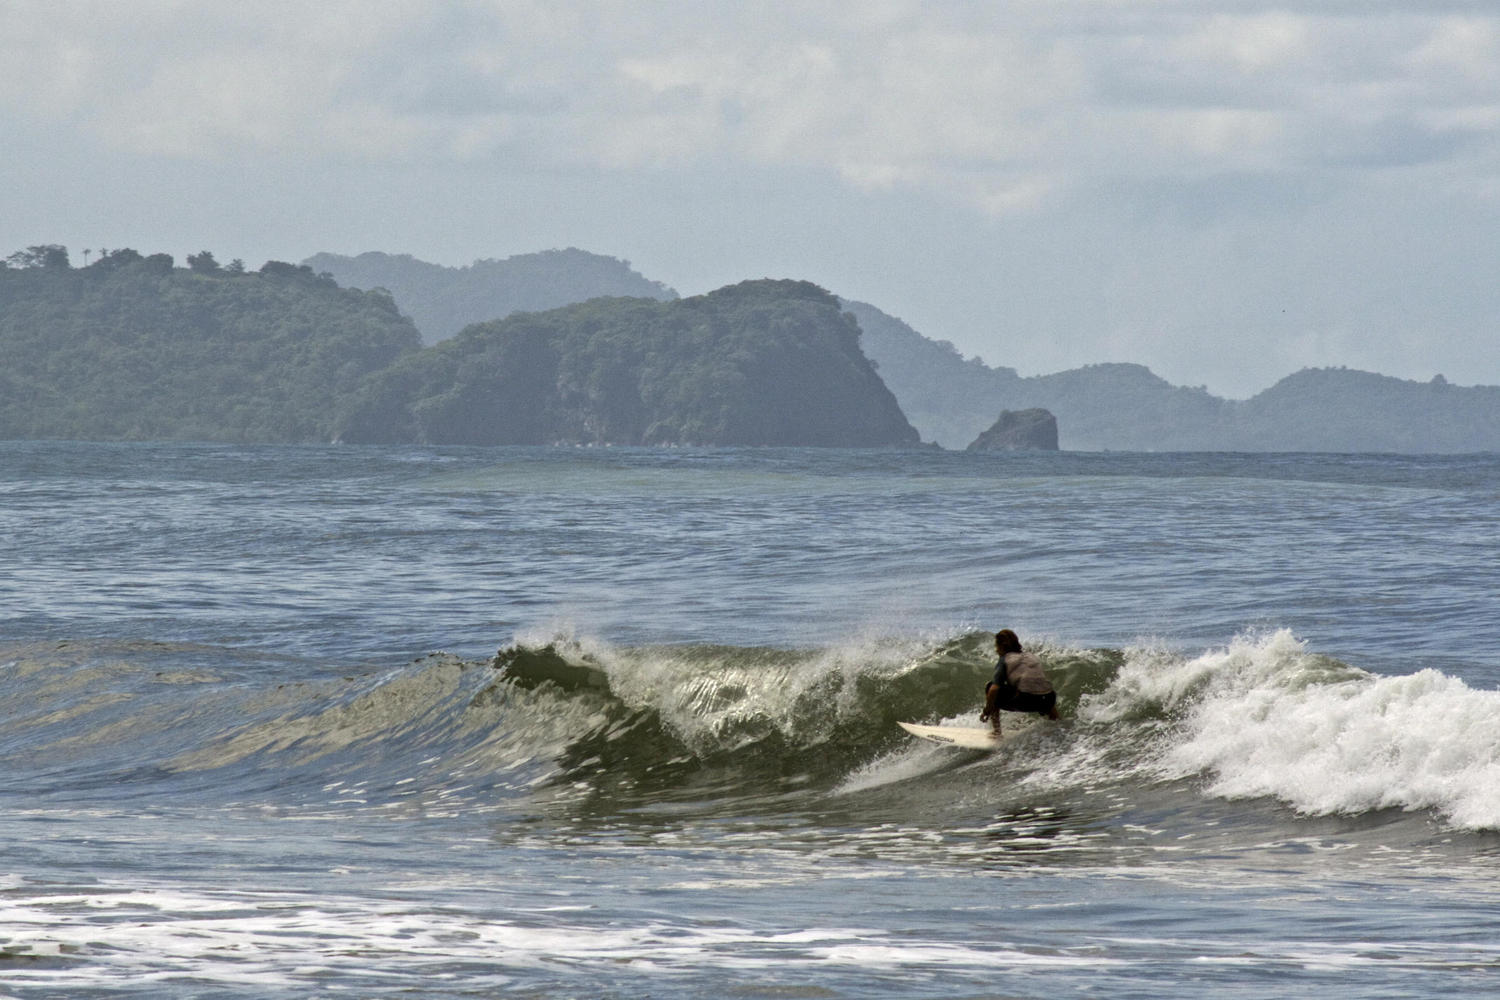 Surfing off the beach of Punta Islita, Costa Rica